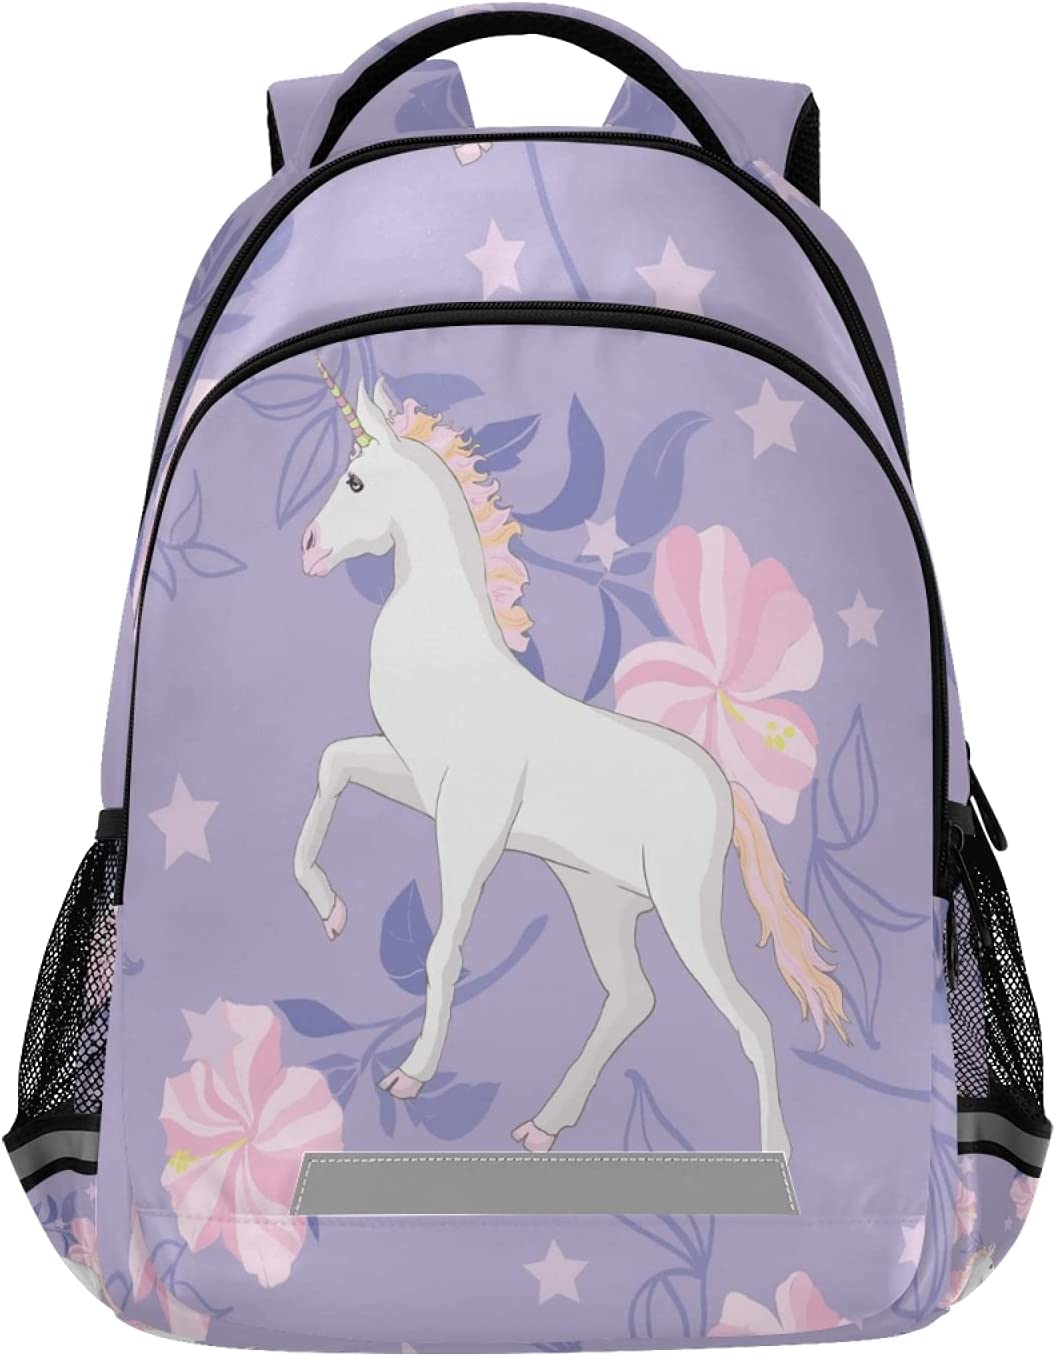 Finally resale start MNSRUU Backpack for Boys Ranking TOP8 and School with Che Cute Girls